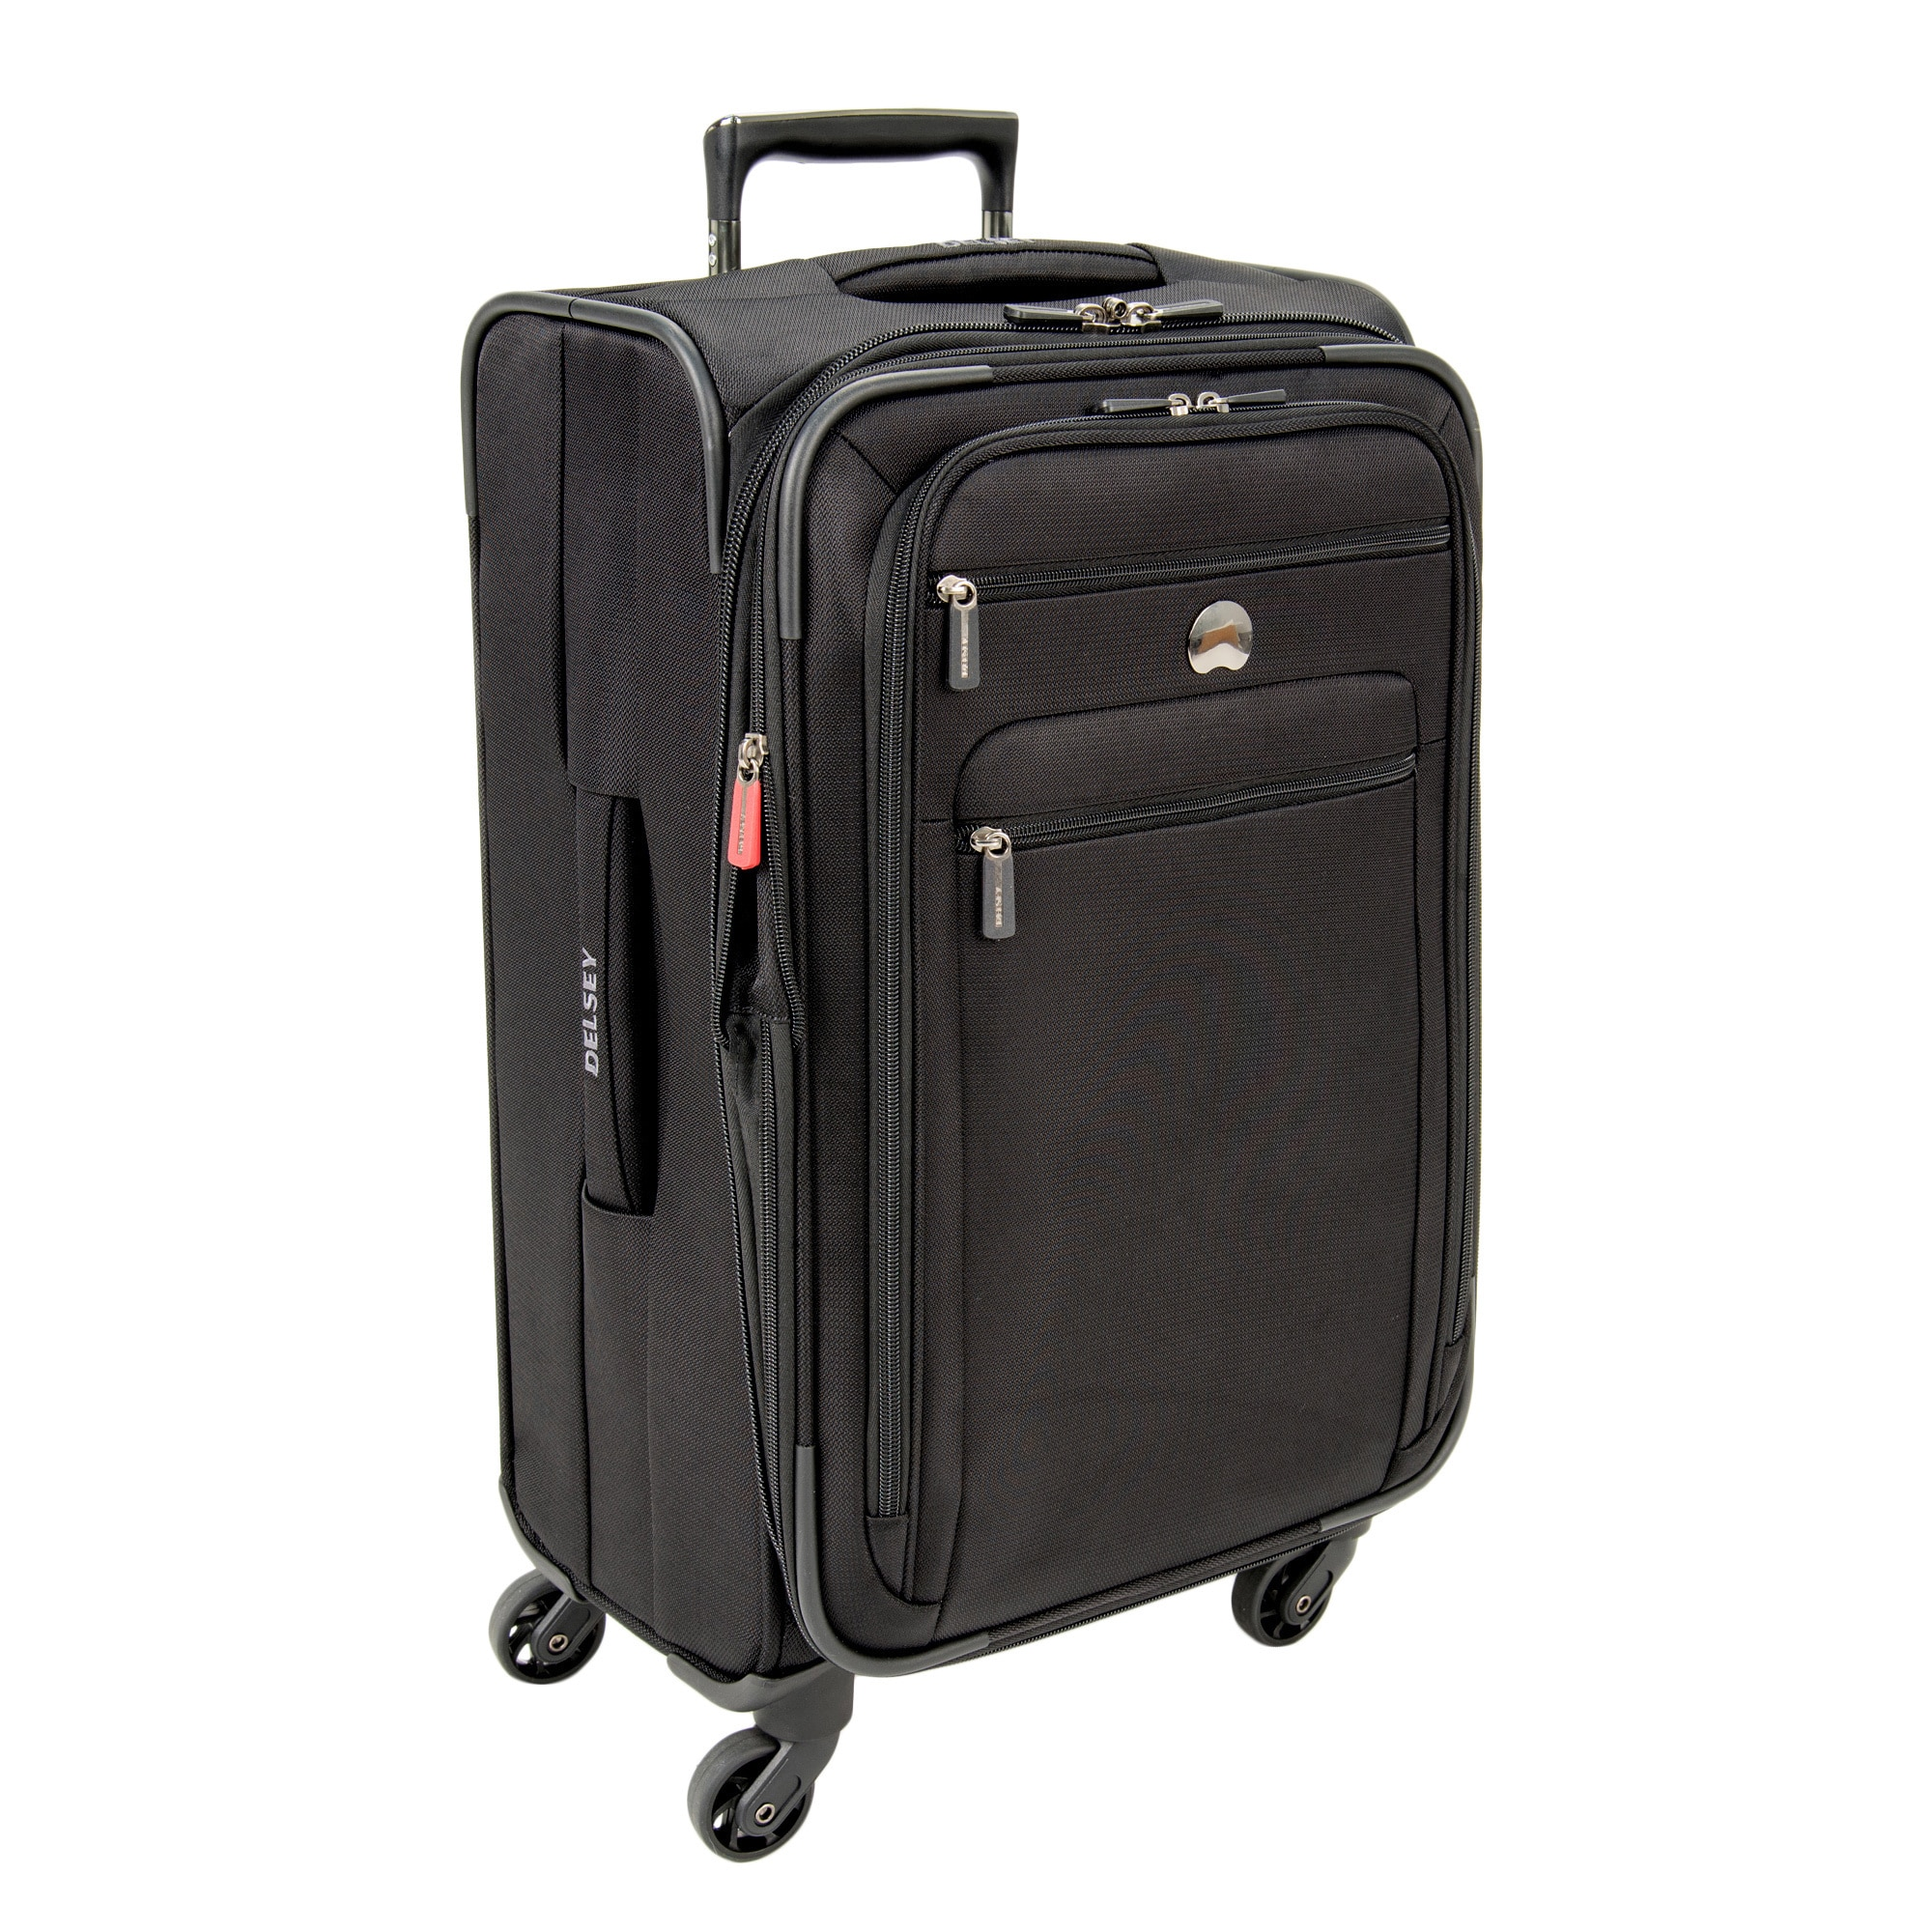 DELSEY Helium Sky 2.0 20.5-inch Carry-on Expandable Spinn...